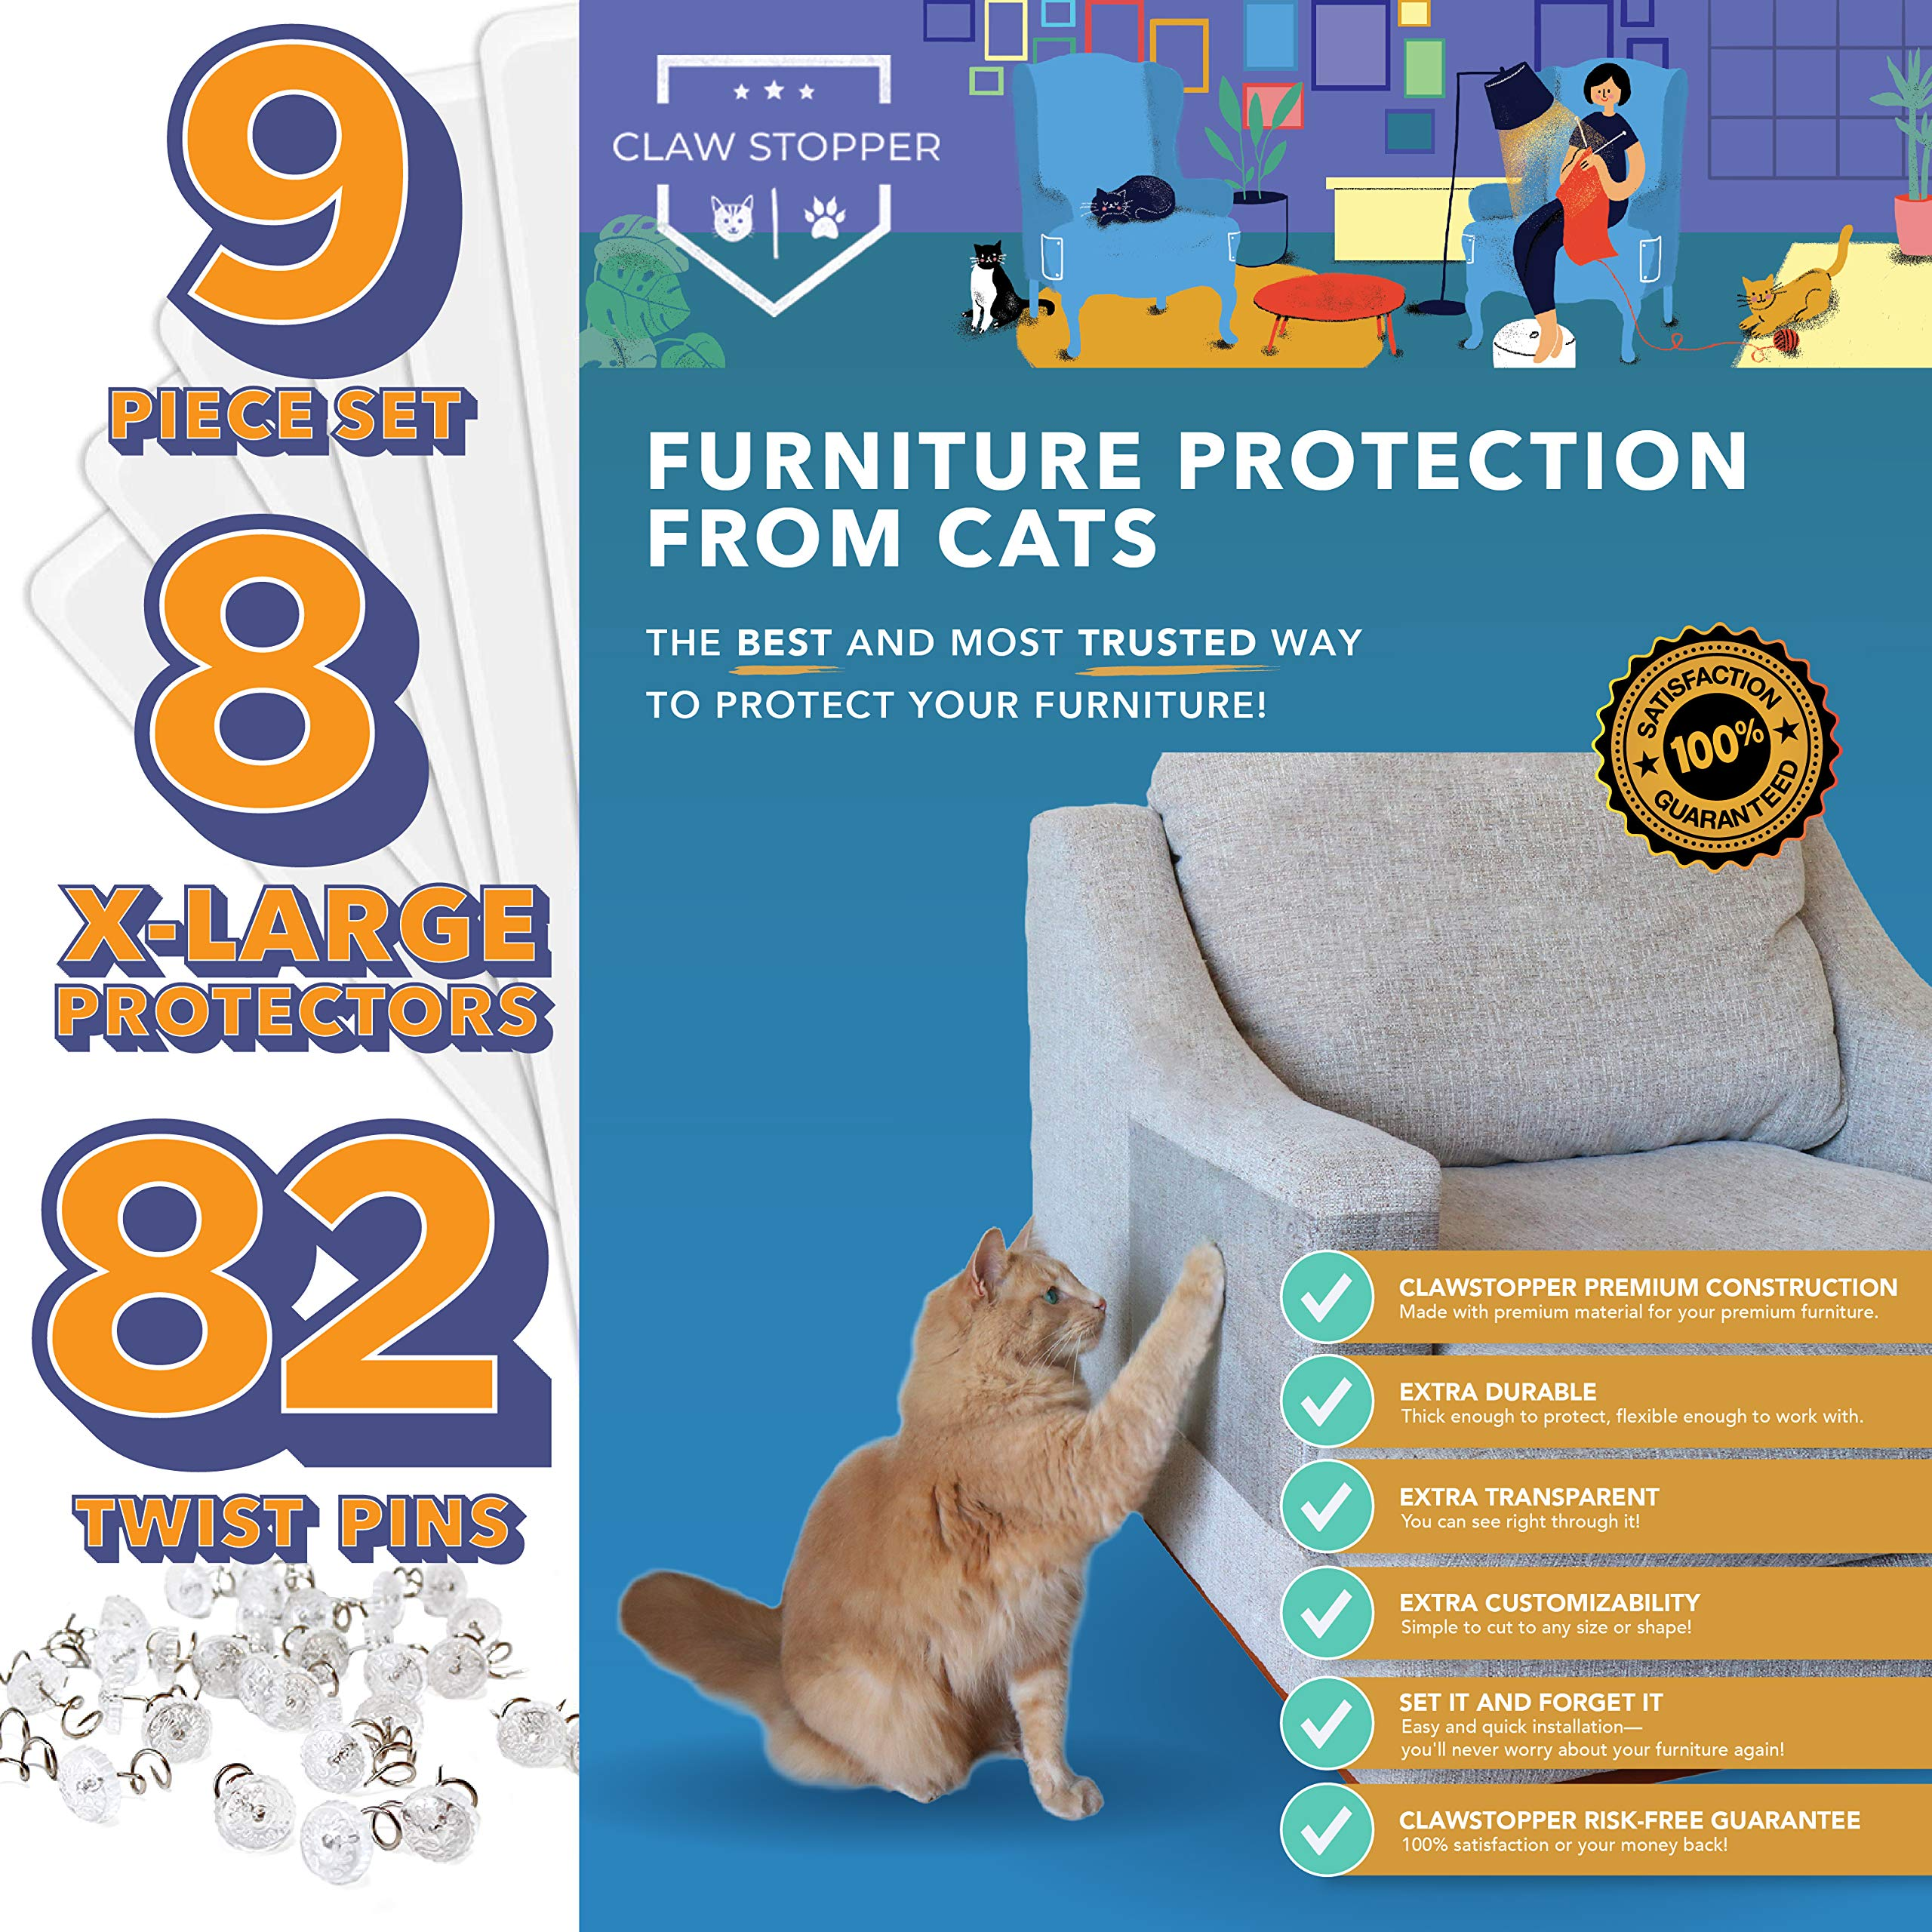 Claw Stopper Furniture Protectors From Cats - 9 Piece Set - Couch Protector from Cats - Cat Scratch Deterrent for Furniture - Couch Cat Scratch Guards - Cat Repellent Indoors - Cat Furniture Protector by Claw Stopper